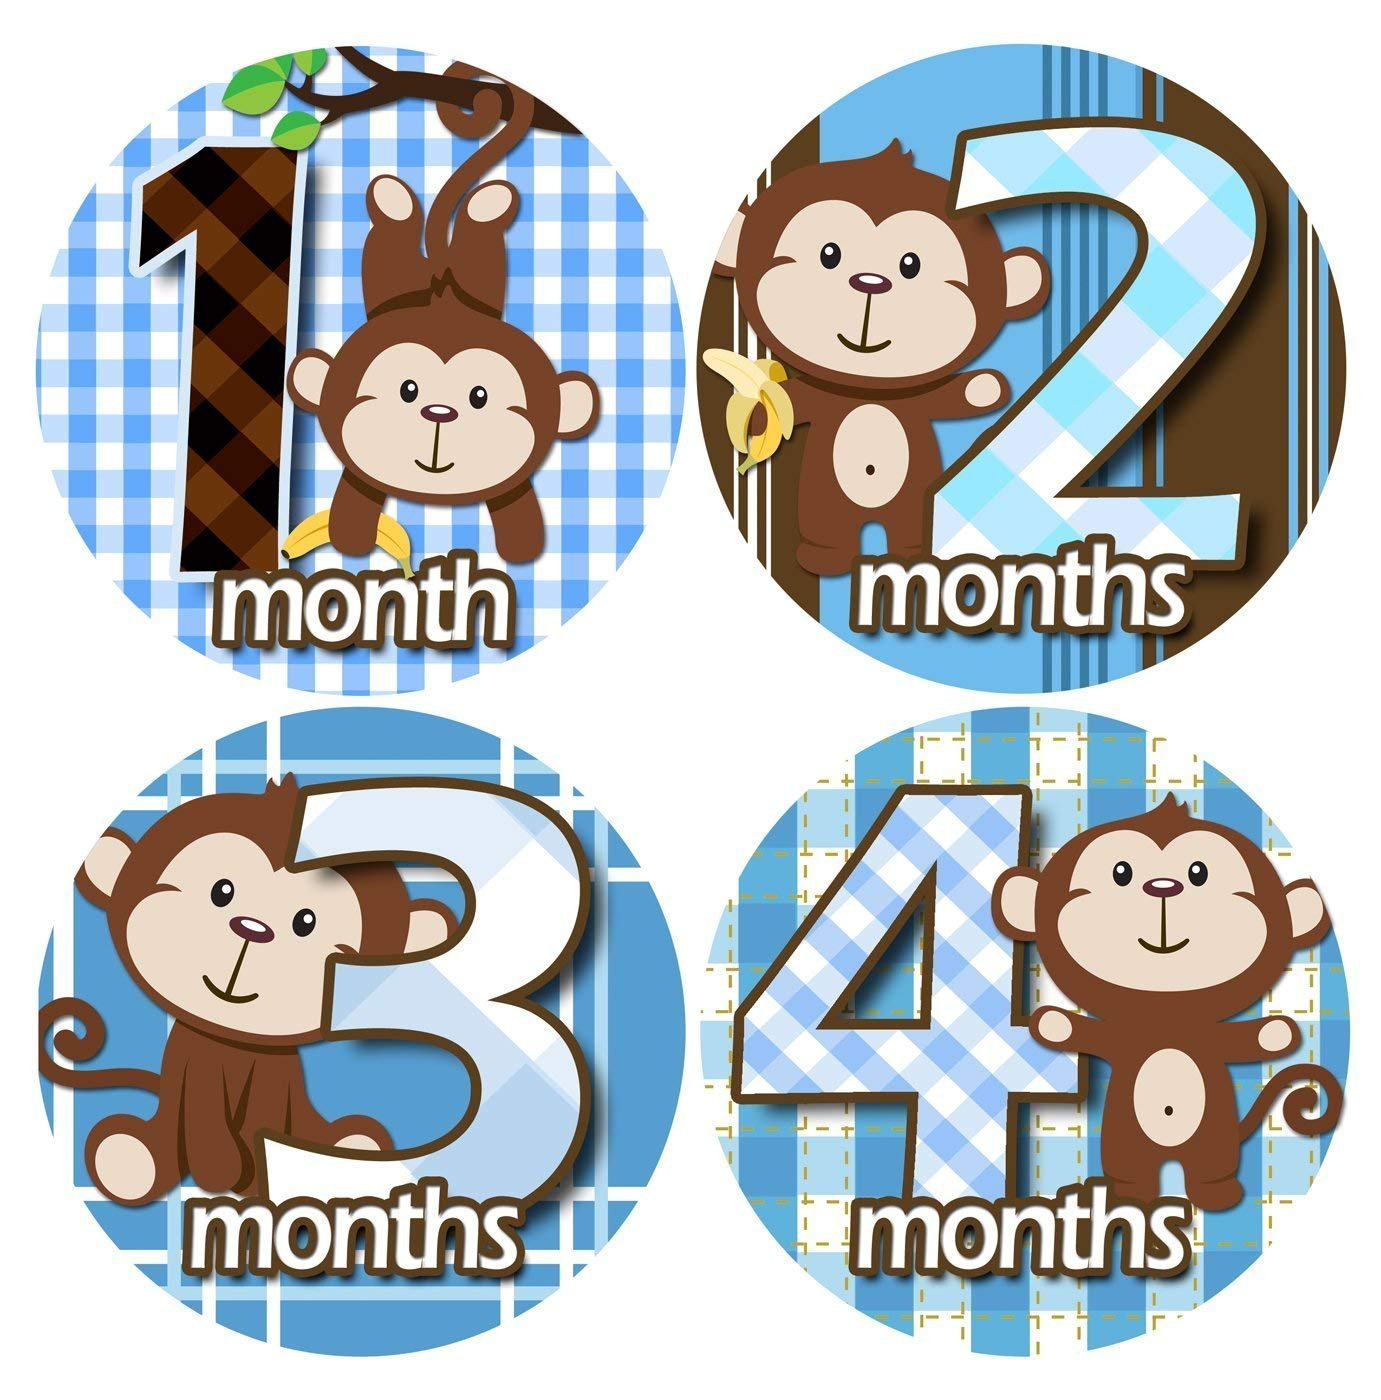 BOY MONKEY CUDDLES 1-12 Month Baby Monthly One Piece Stickers Baby Shower Gift Photo Shower Stickers EasySells